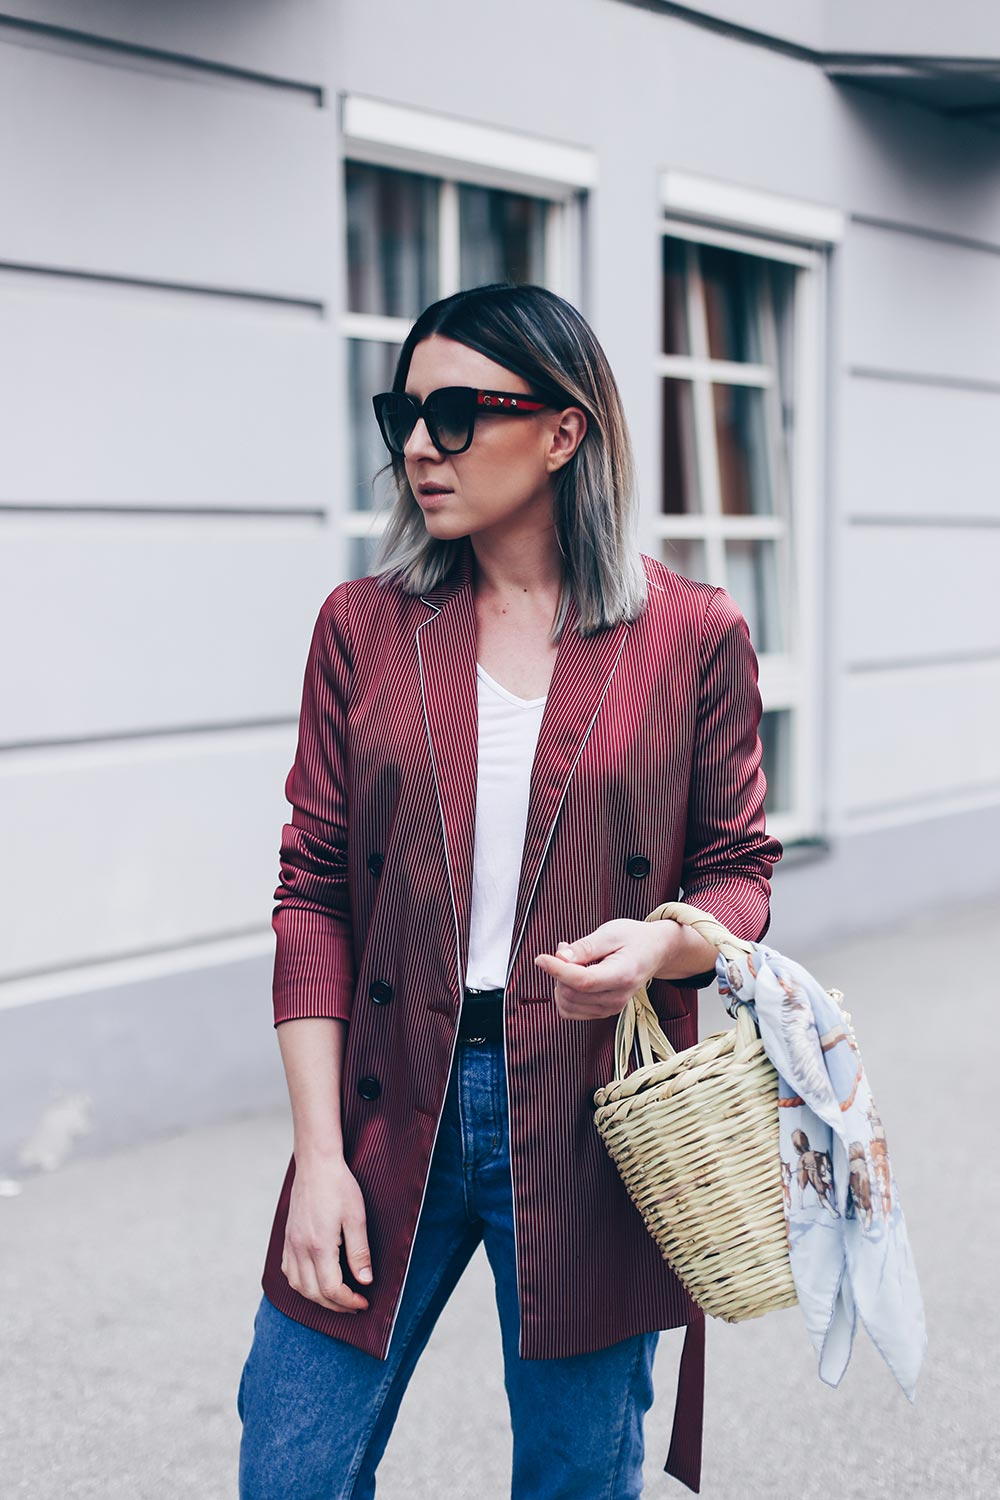 Casual Blazer Outfit mit Jane Birkin Basket und Denim Slippers, Jane Birkin Basket stylen und shoppen, Style Blog, Modeblog, Outfit Blog, Streetstyle 2017, Blazer Outfit, www.whoismocca.com